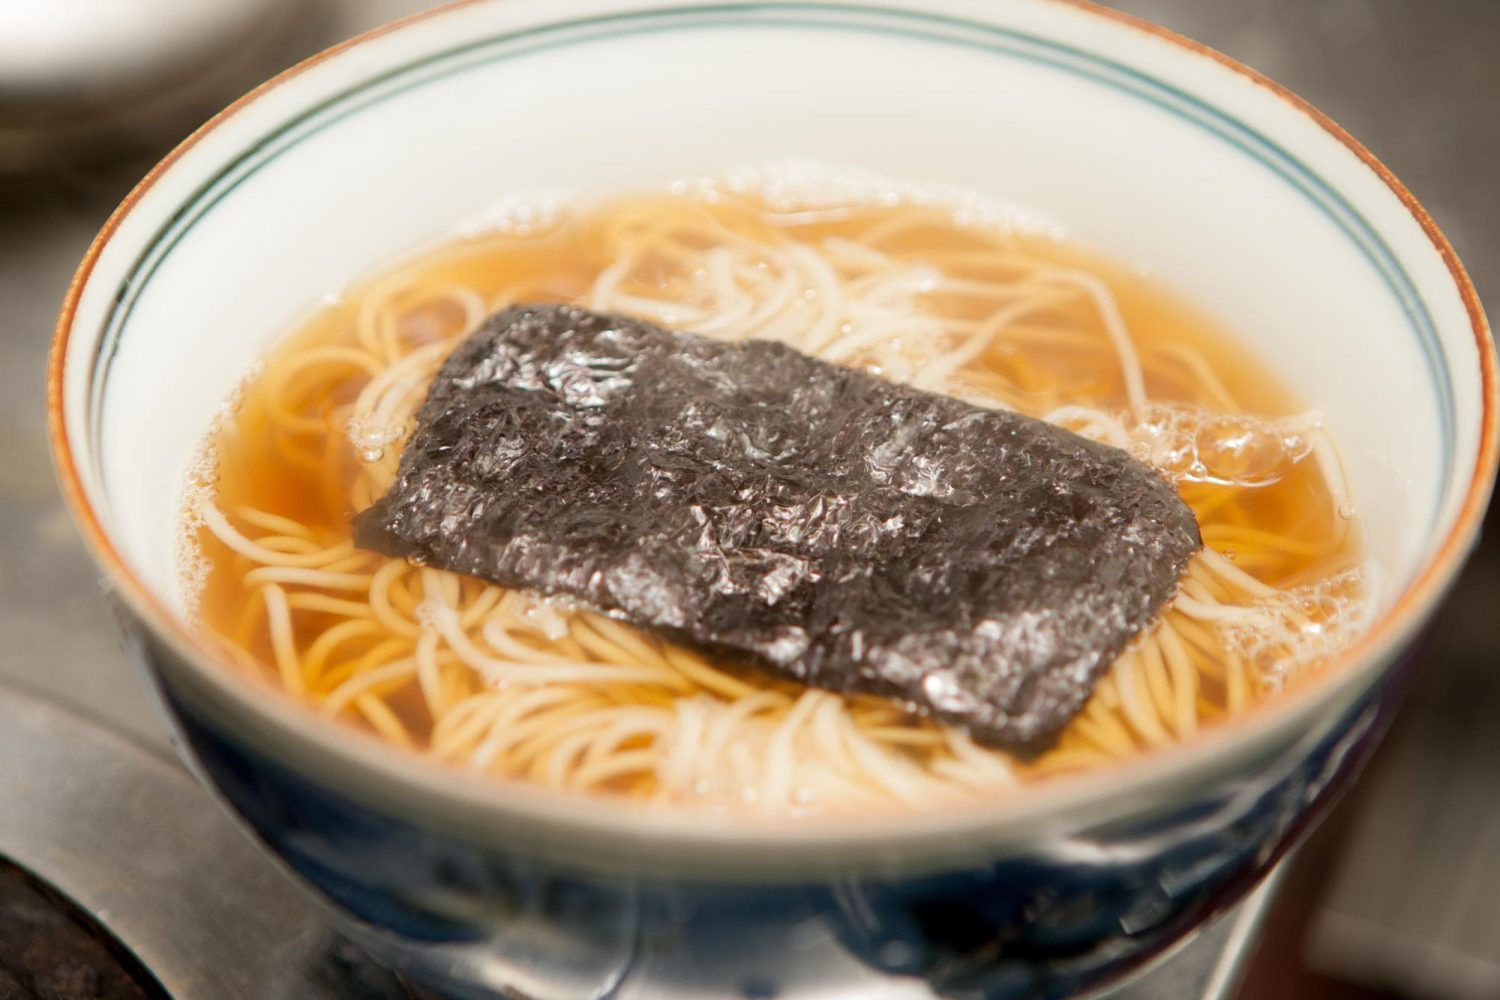 KAKE(かけ) : Was placed in a hot soup of noodle